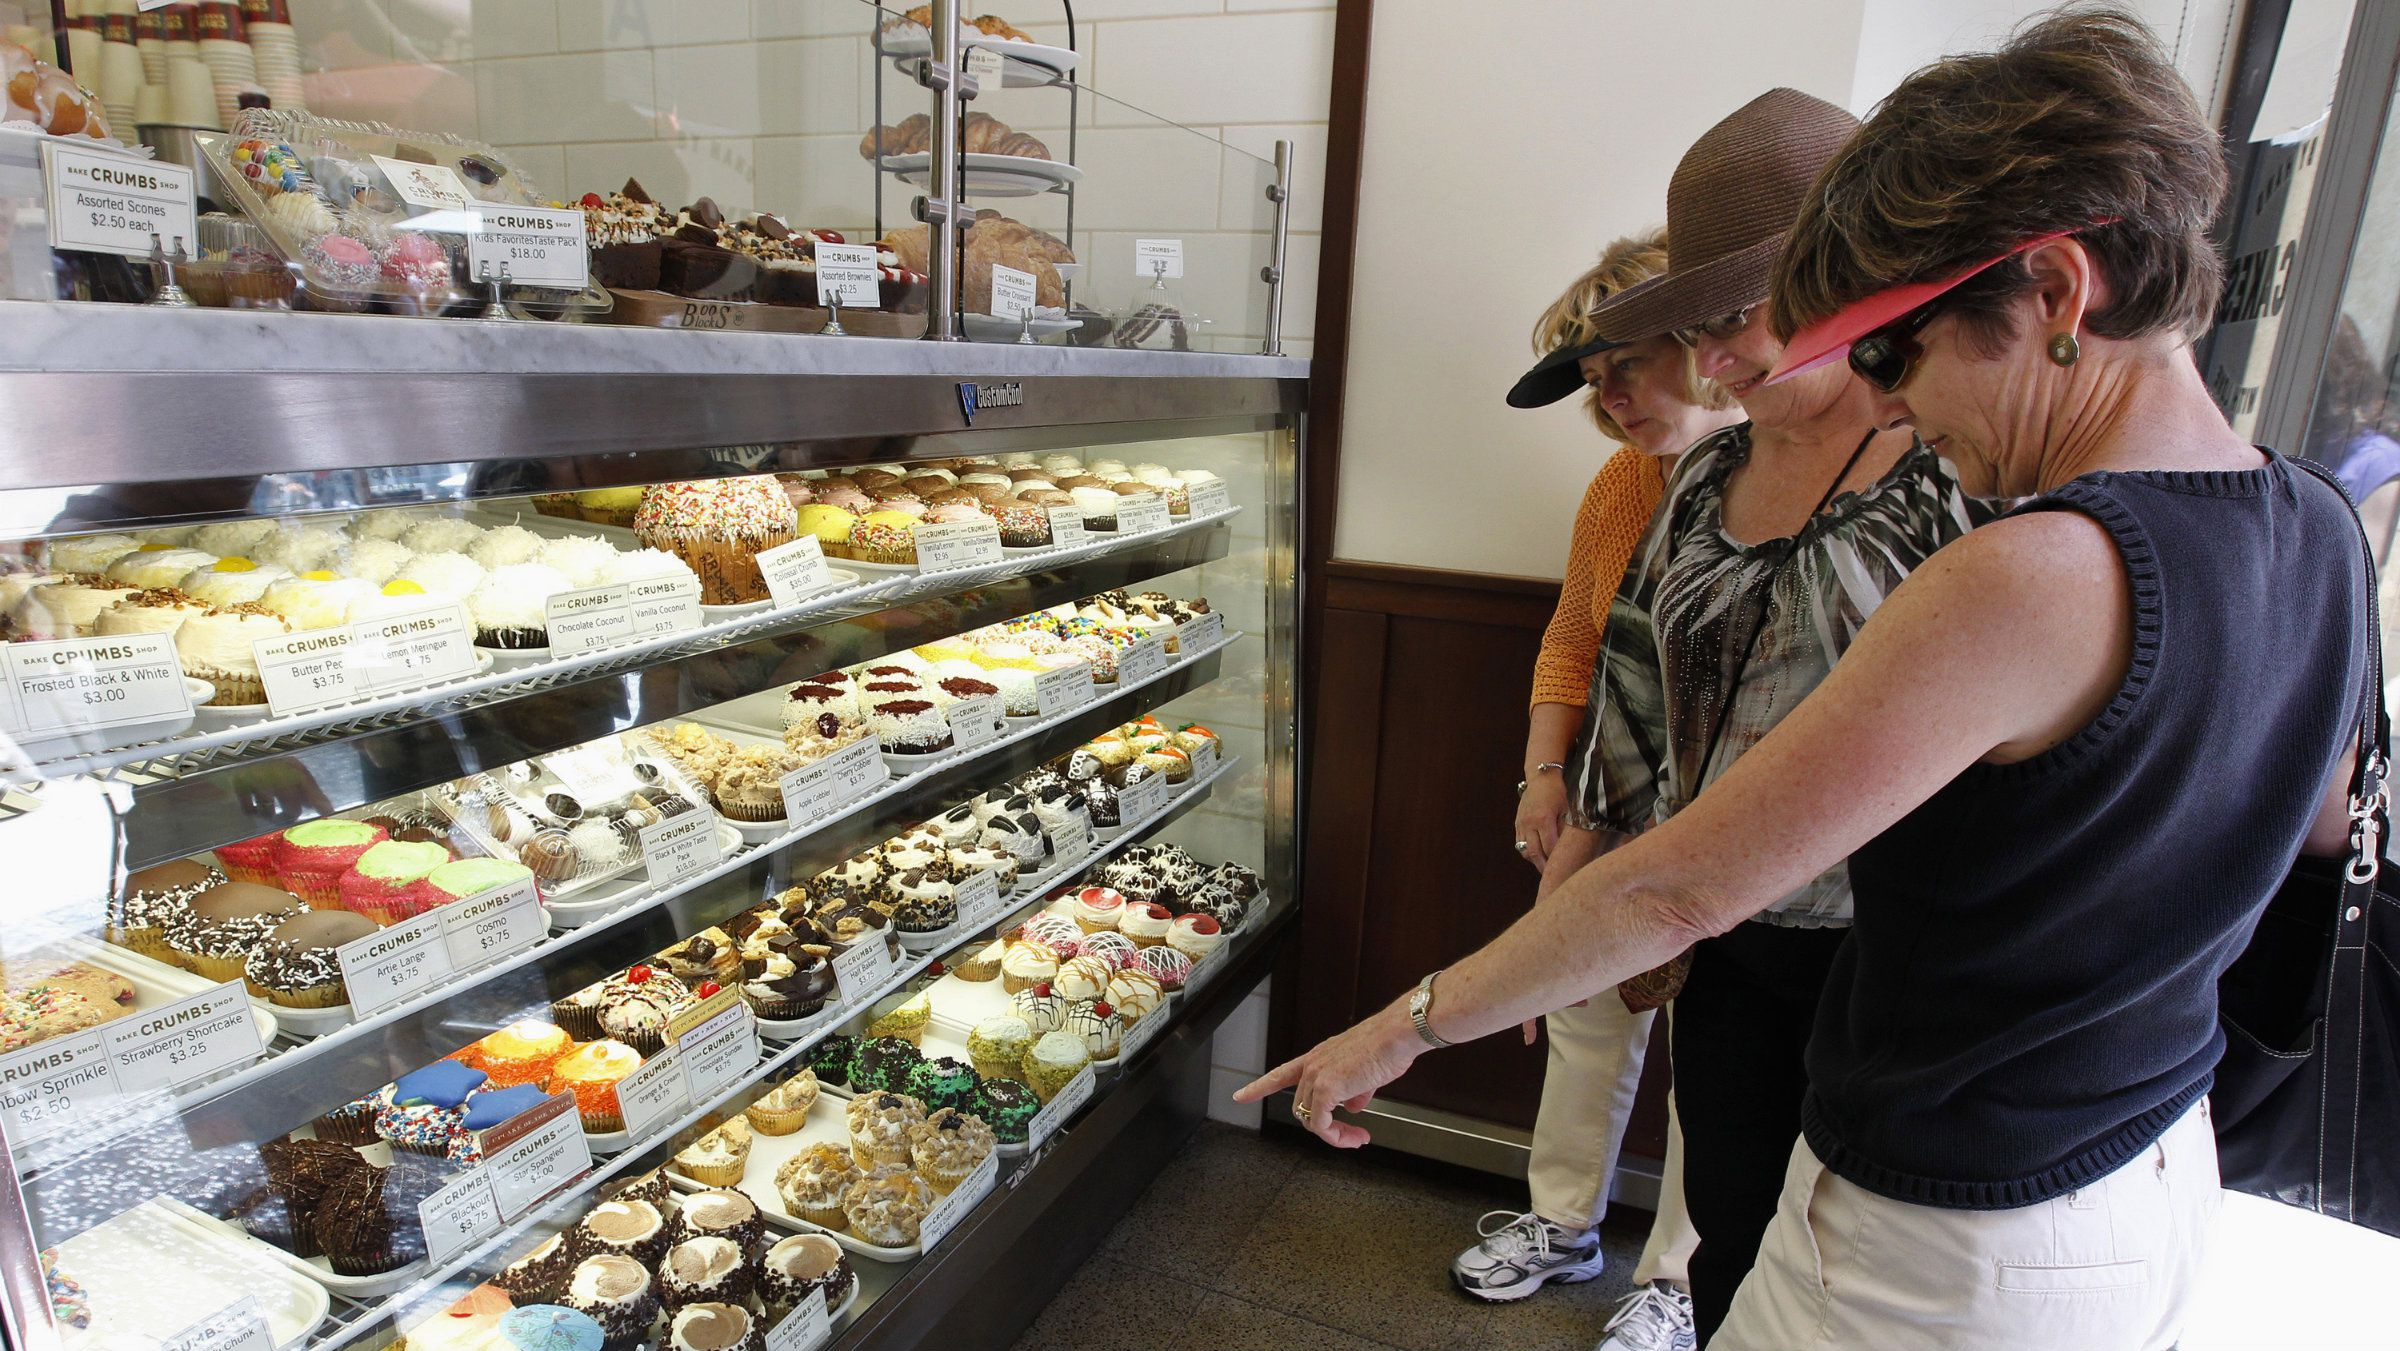 Customers Peggy Umphres (R), Barbara Frey (C) and Maureen Thompson look at cupcakes for sale in a Crumbs Bake Shop, which specializes in over 50 varieties of cupcakes, in Hollywood, California